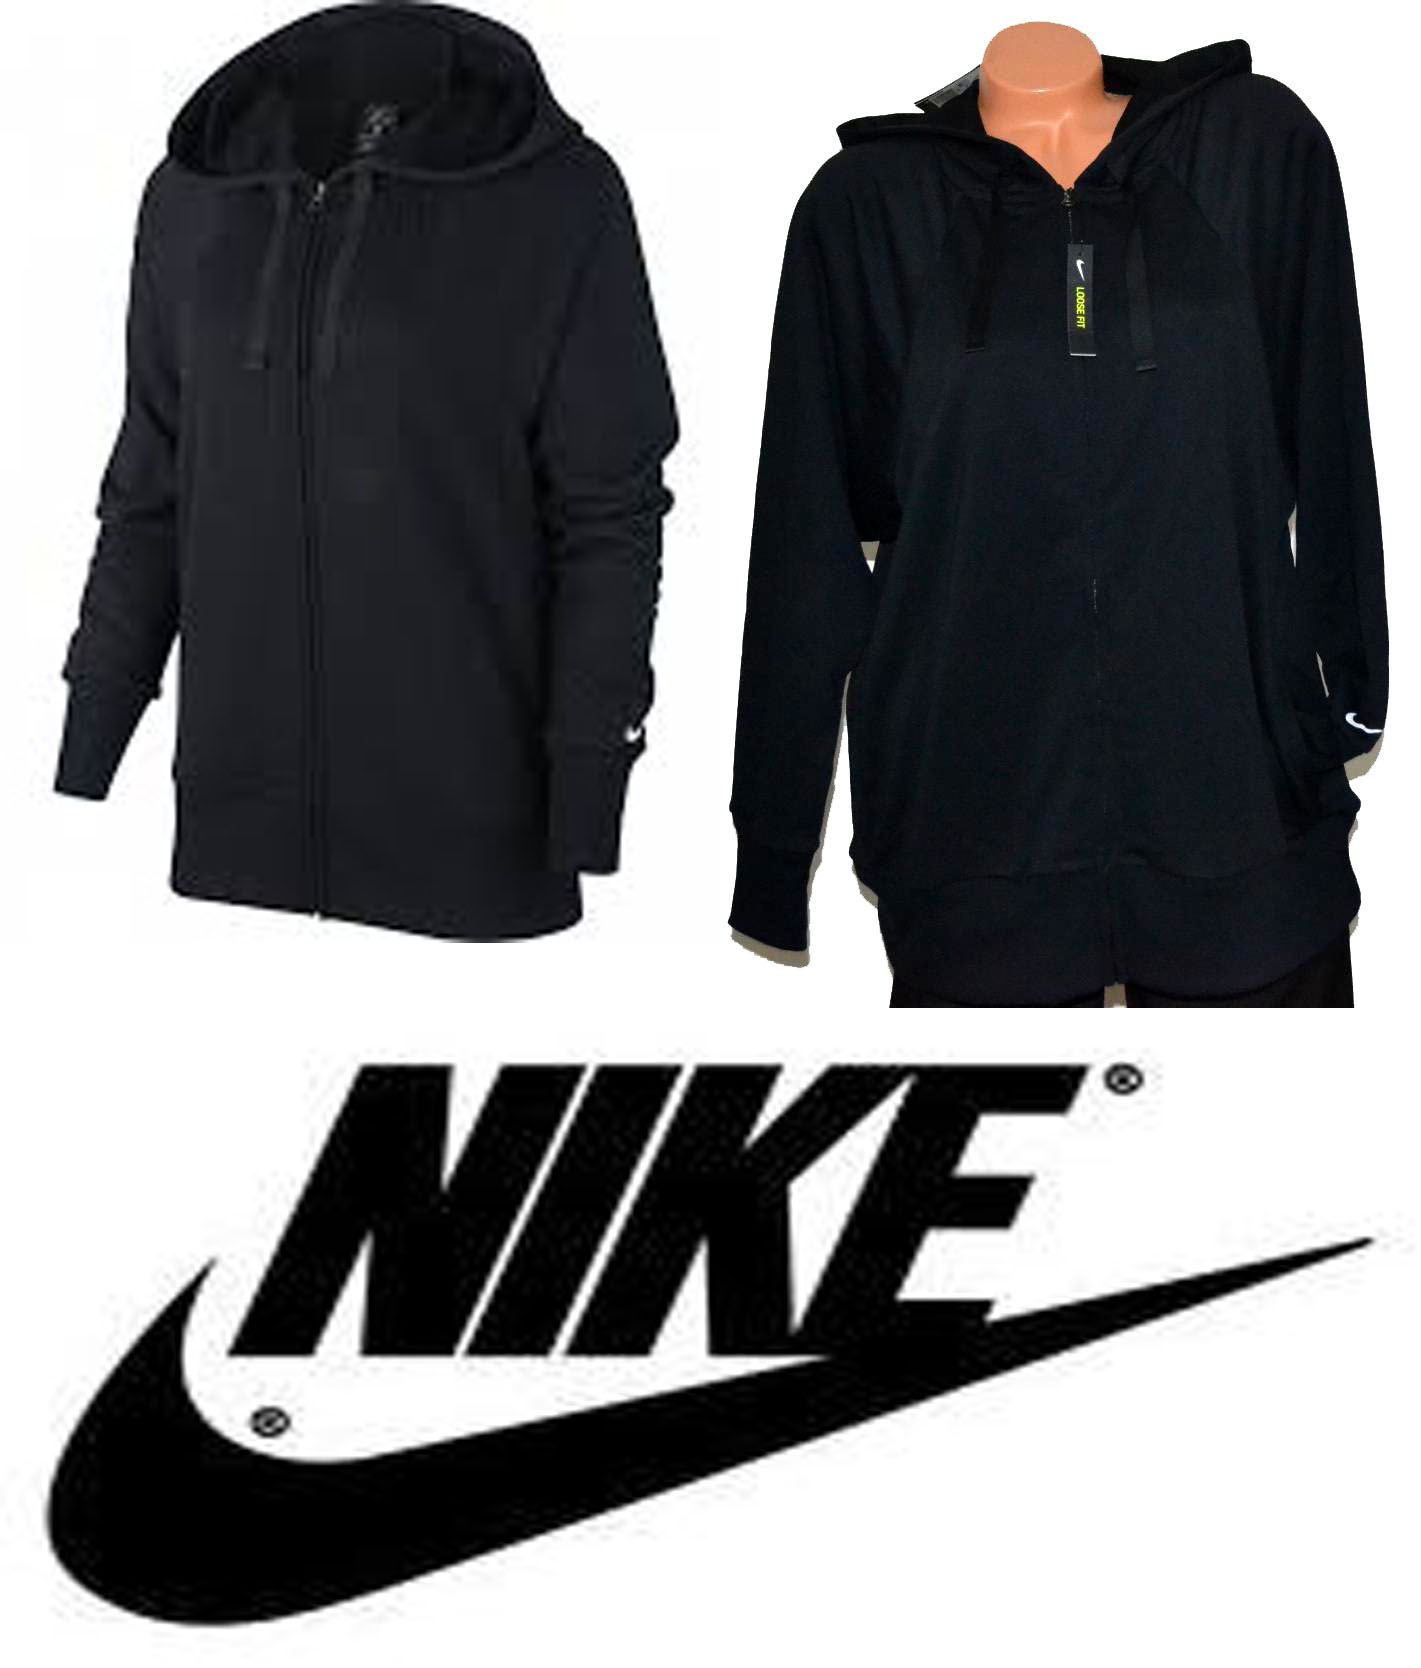 Mikina zn. NIKE LOOSE FIT vel. L